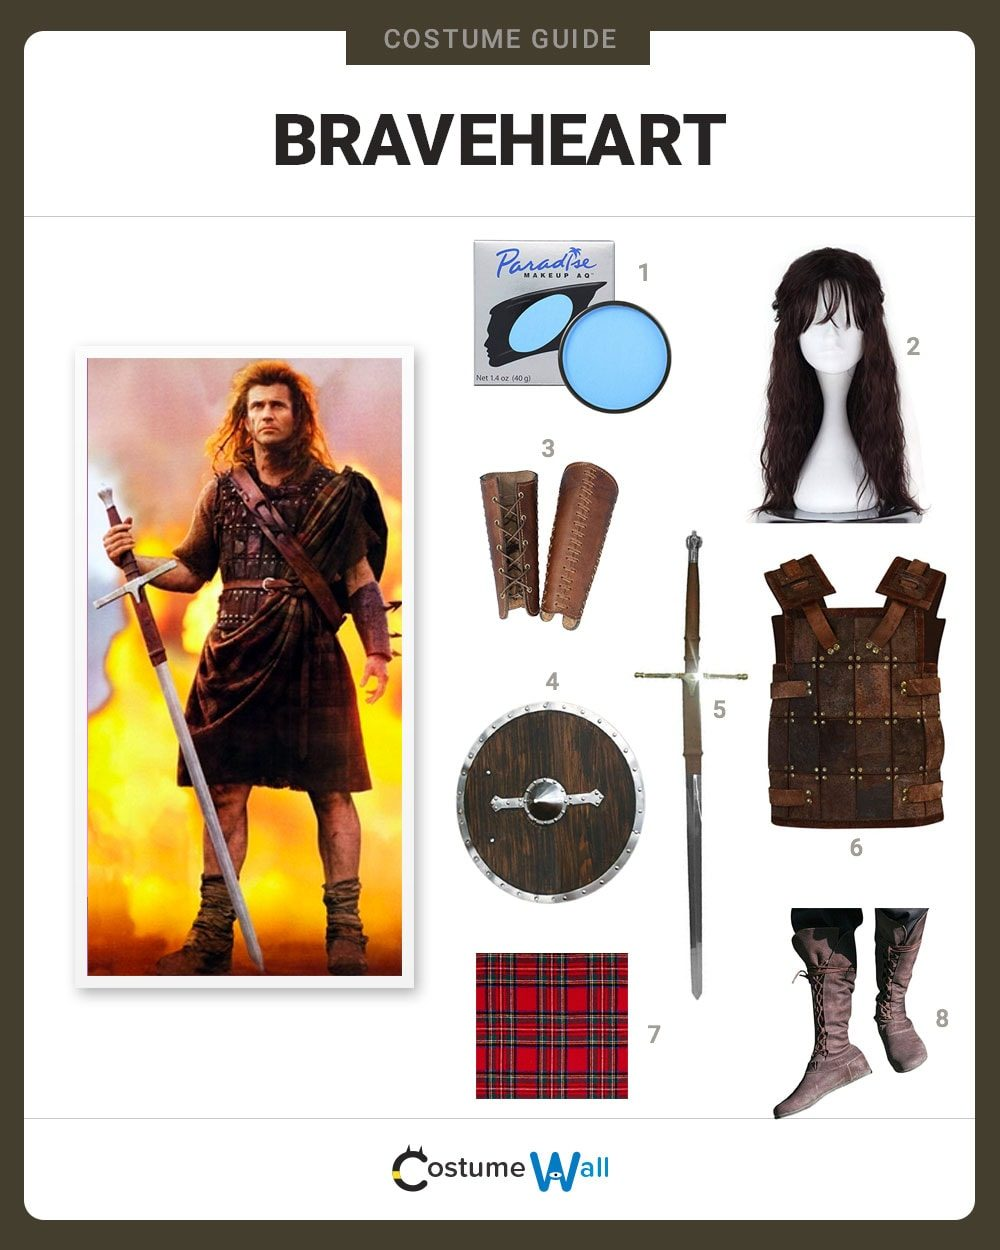 Braveheart Costume Guide